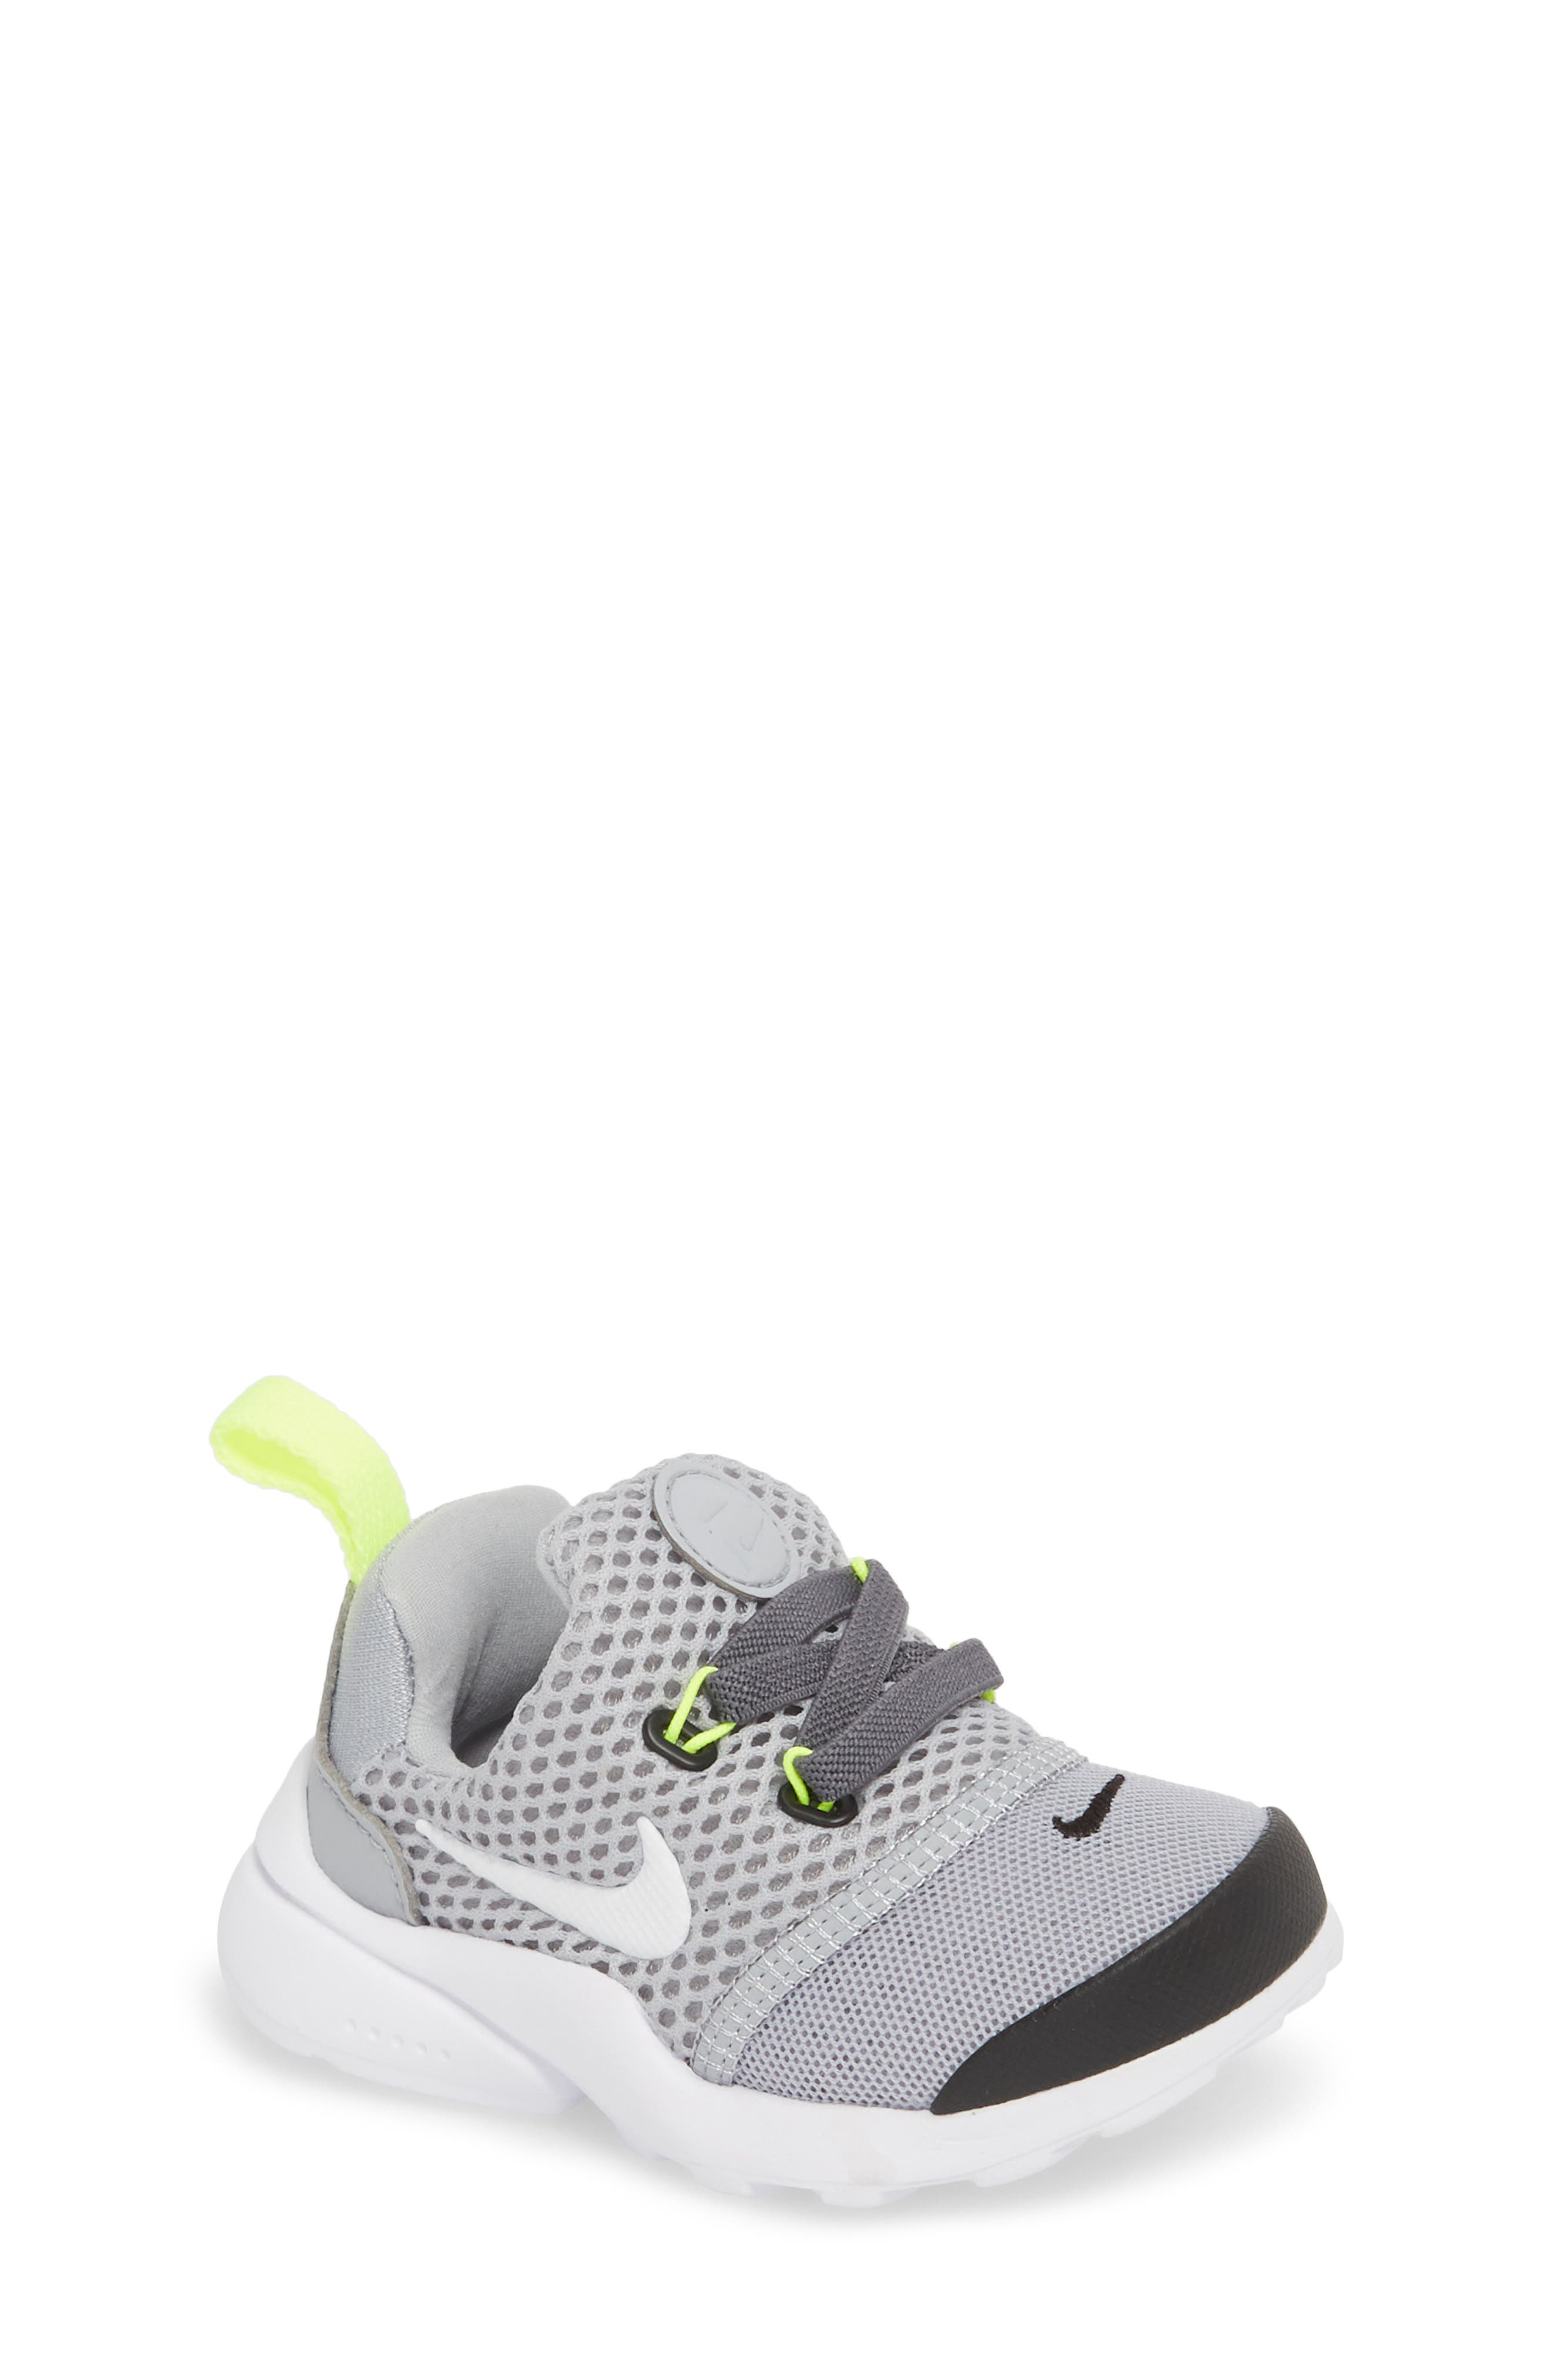 Presto Fly GS Sneaker,                             Main thumbnail 1, color,                             Grey/ White/ Black/ Volt